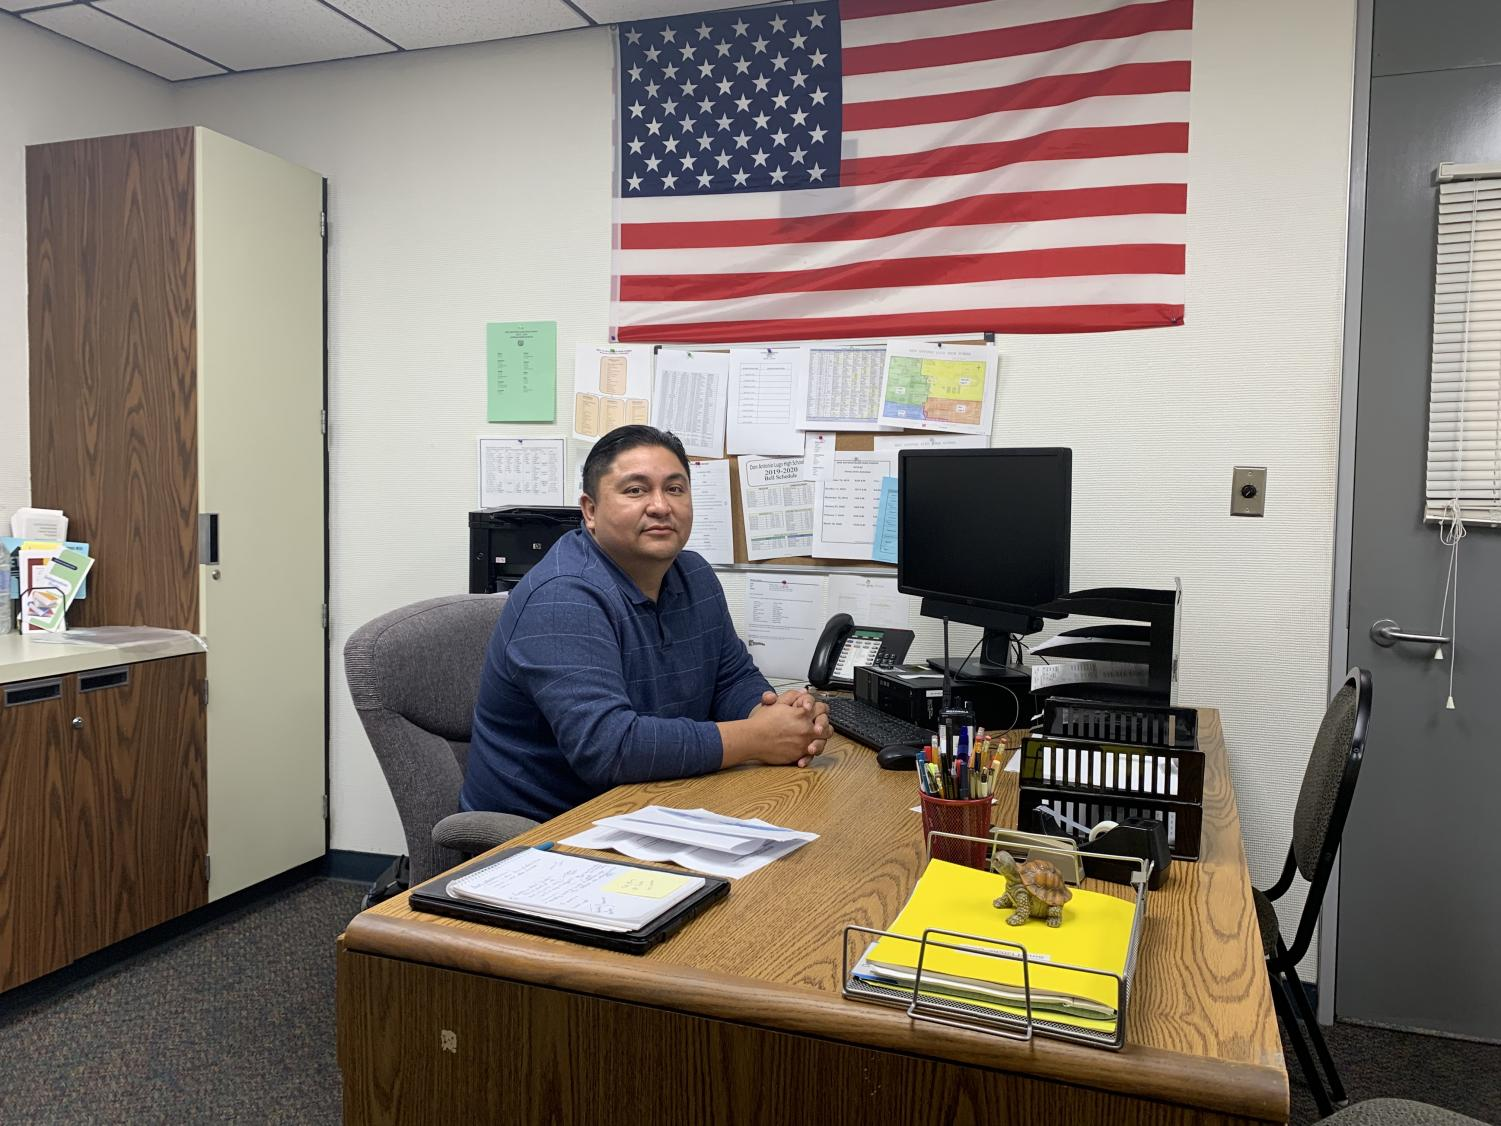 Vice Principal Dr. Ramirez in his office, Photographer Valerie Torres